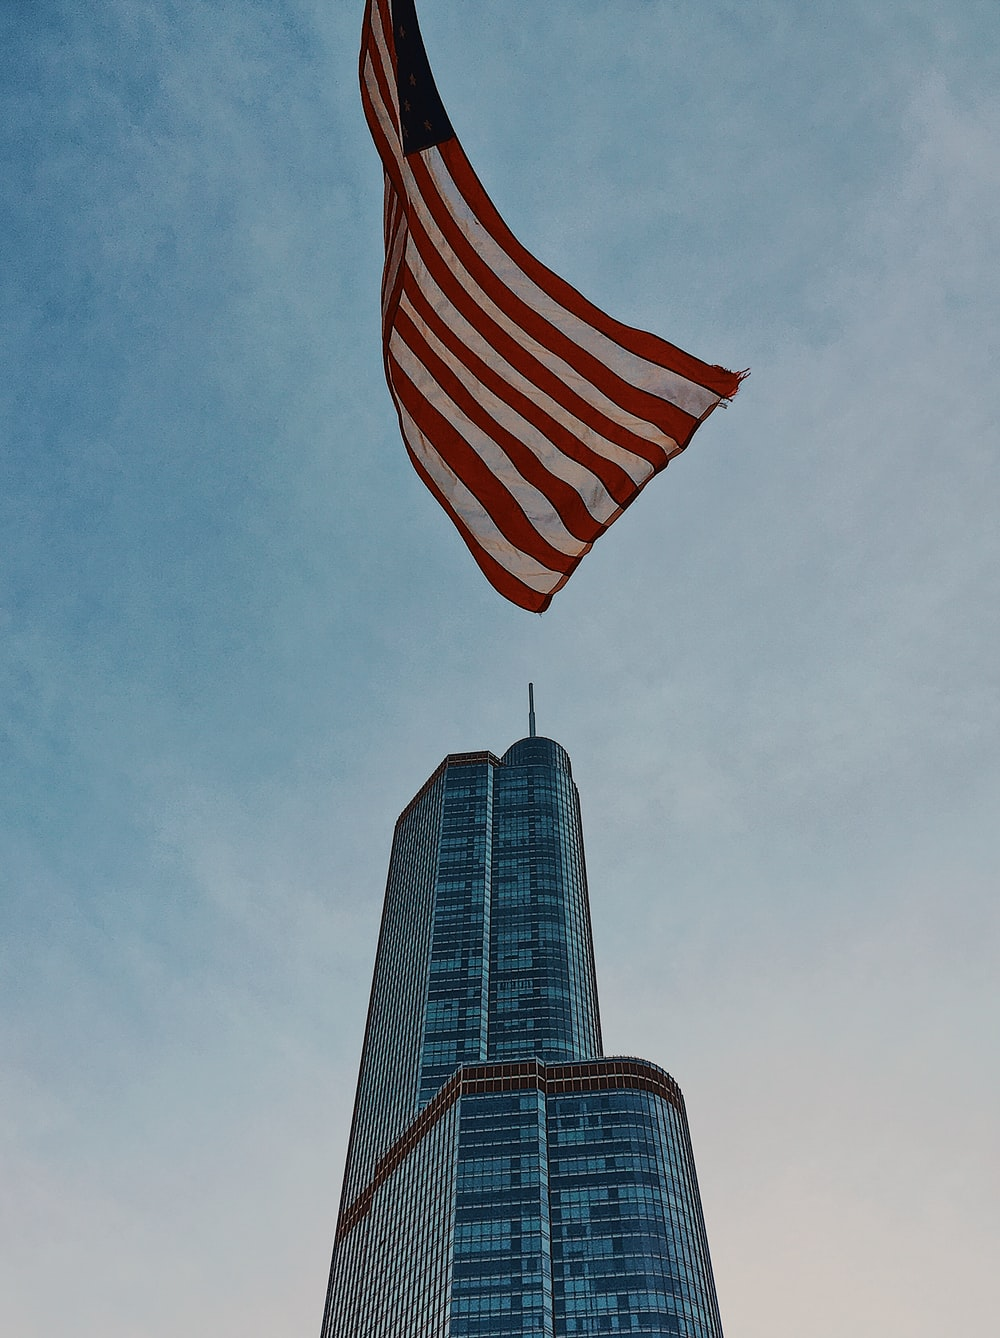 U.S. flag flying n pole in front of blue high rise building